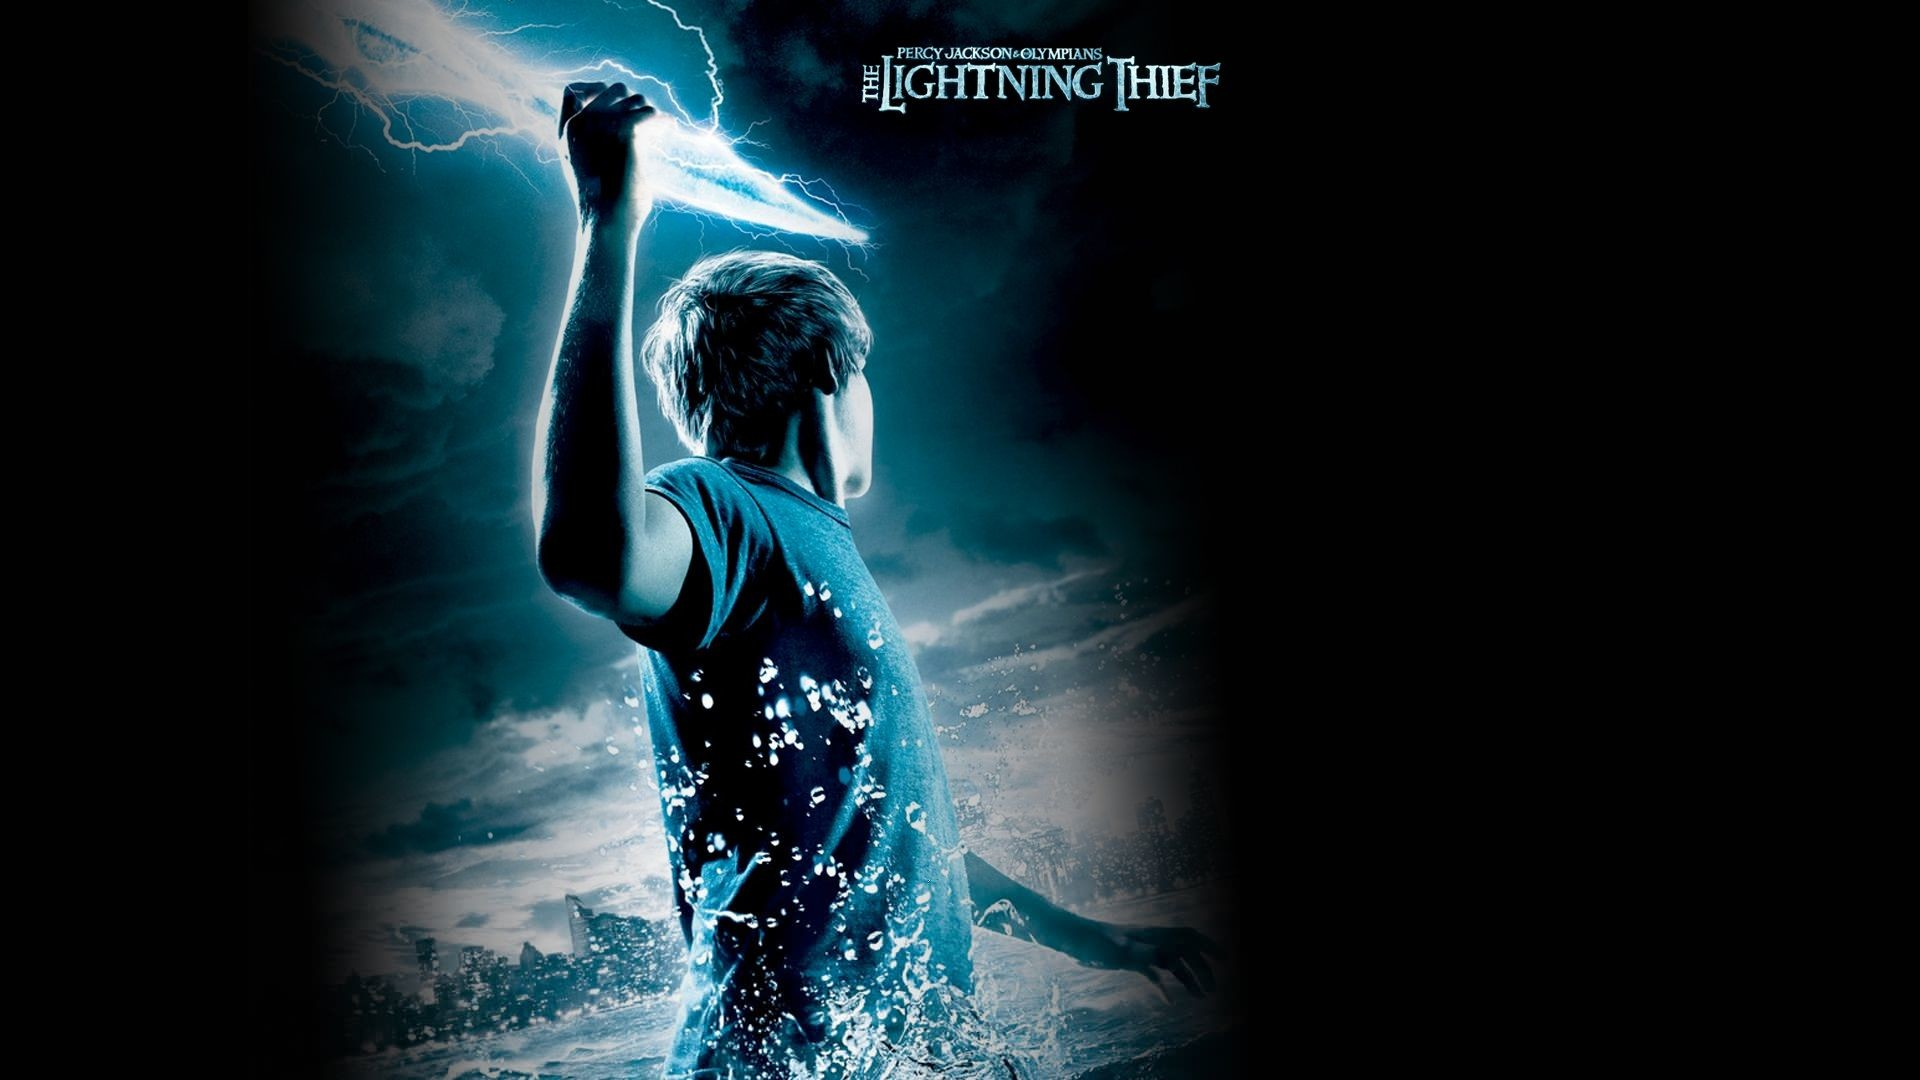 Percy jackson wallpaper 75 images 1920x1080 1920x1080 free desktop backgrounds for percy jackson and the olympians the lightning thief download voltagebd Image collections